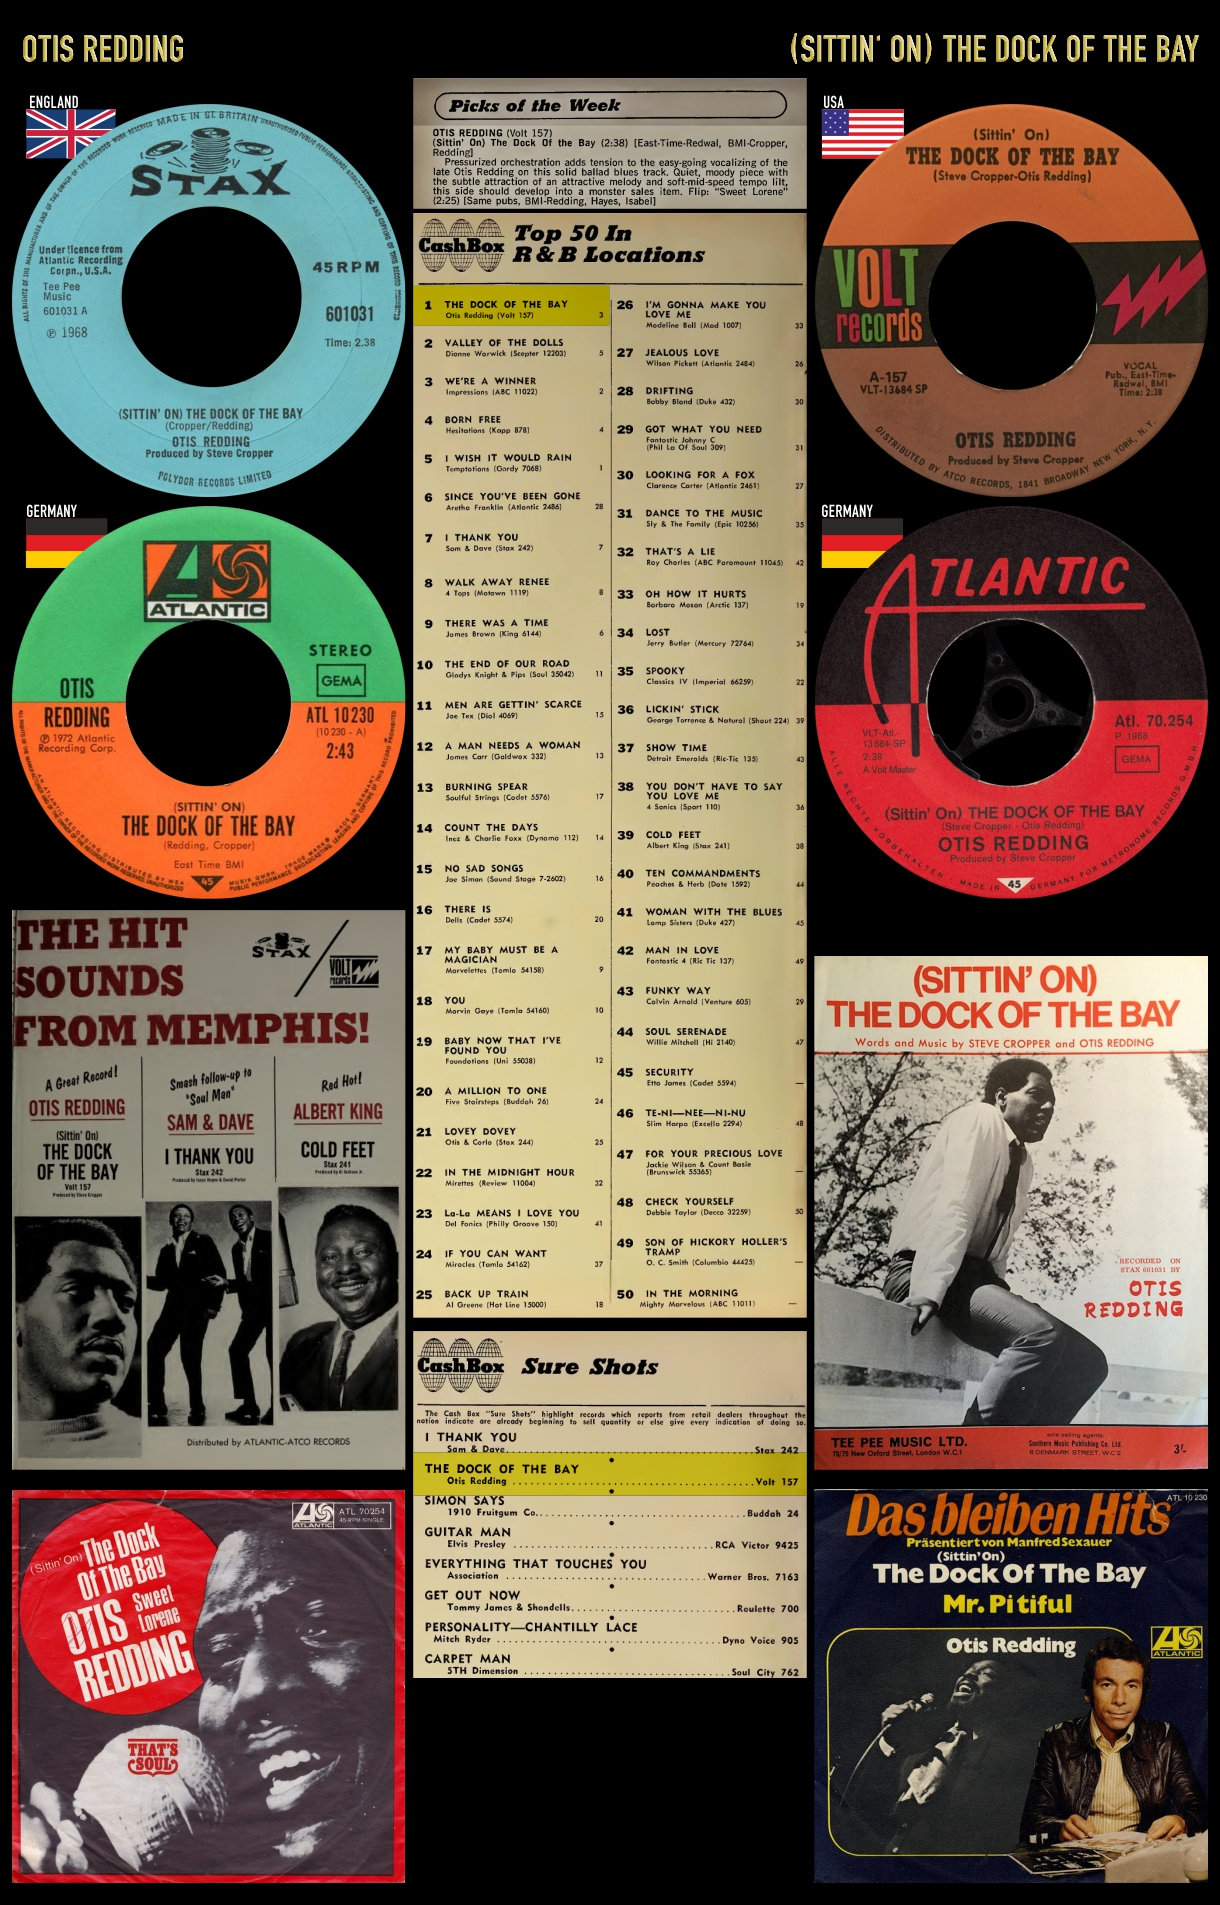 680127_Otis Redding_The Dock Of The Bay